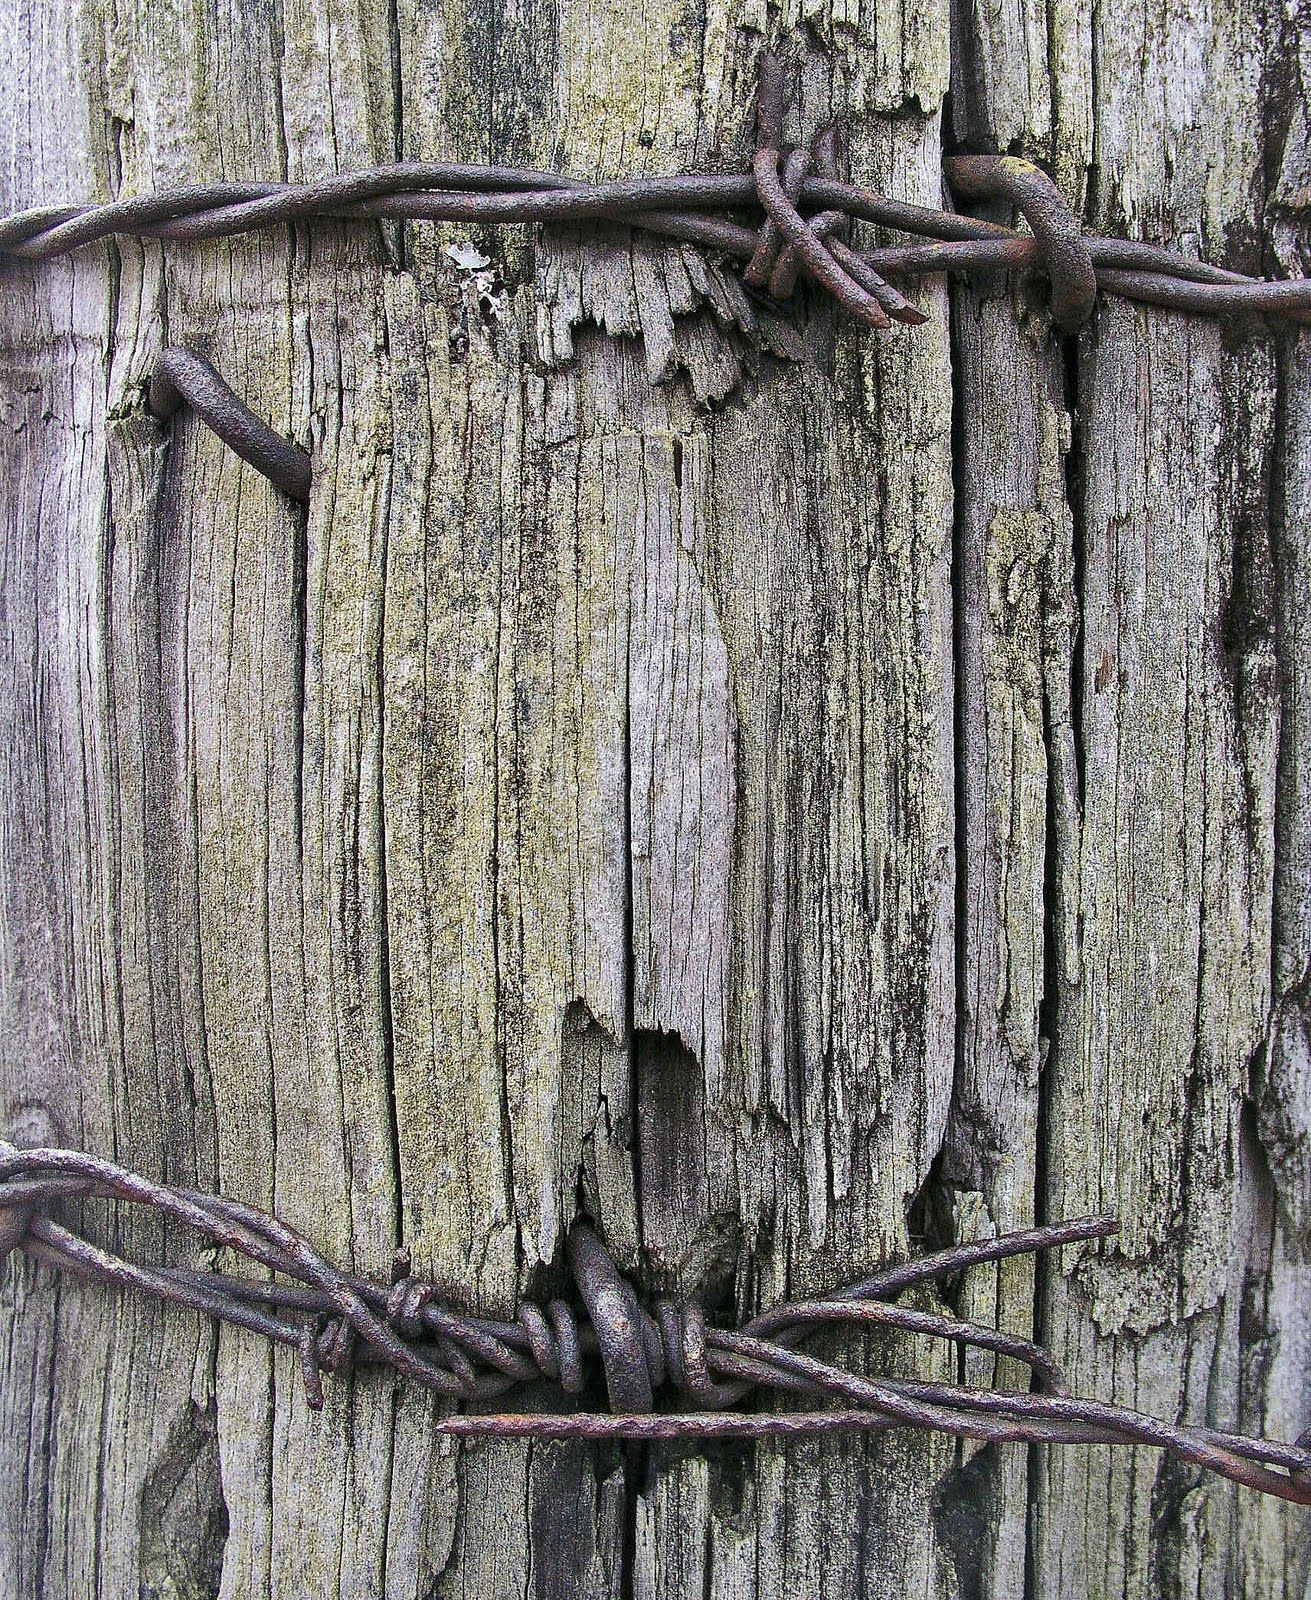 Barbed Wire Stapled Onto Post Photo Ideas In 2019